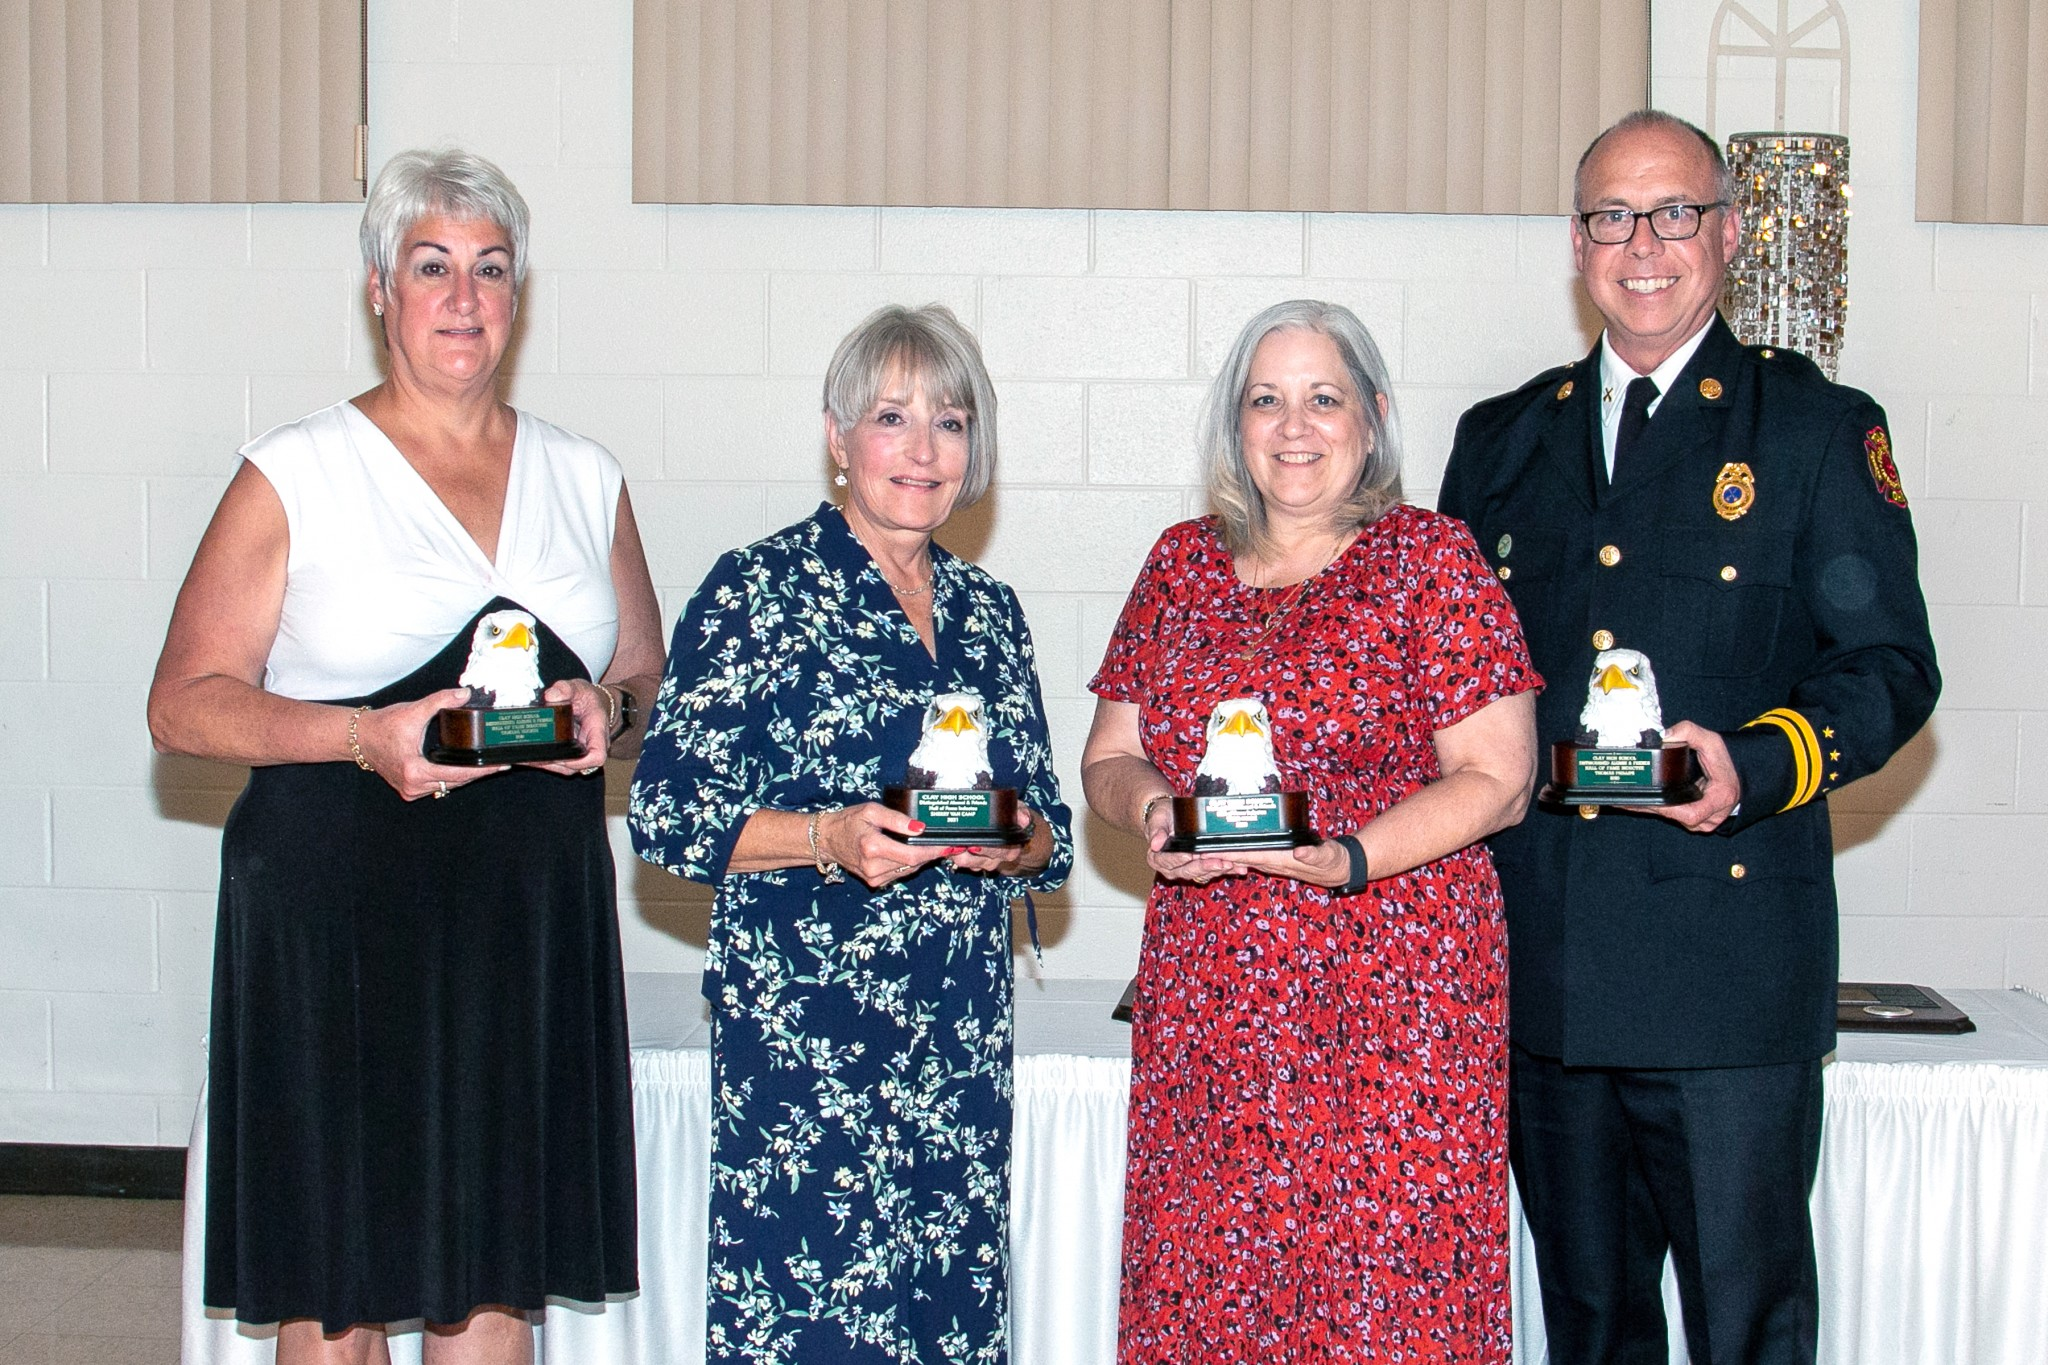 Four Clay High School graduates were inducted as Distinguished Alumni at a banquet held Sept. 16. They include, from left, Tamara Hughes, Sherry Van Camp, Terri Wamer Hook and Thomas Phillips. (Photo by Amy Hansen)